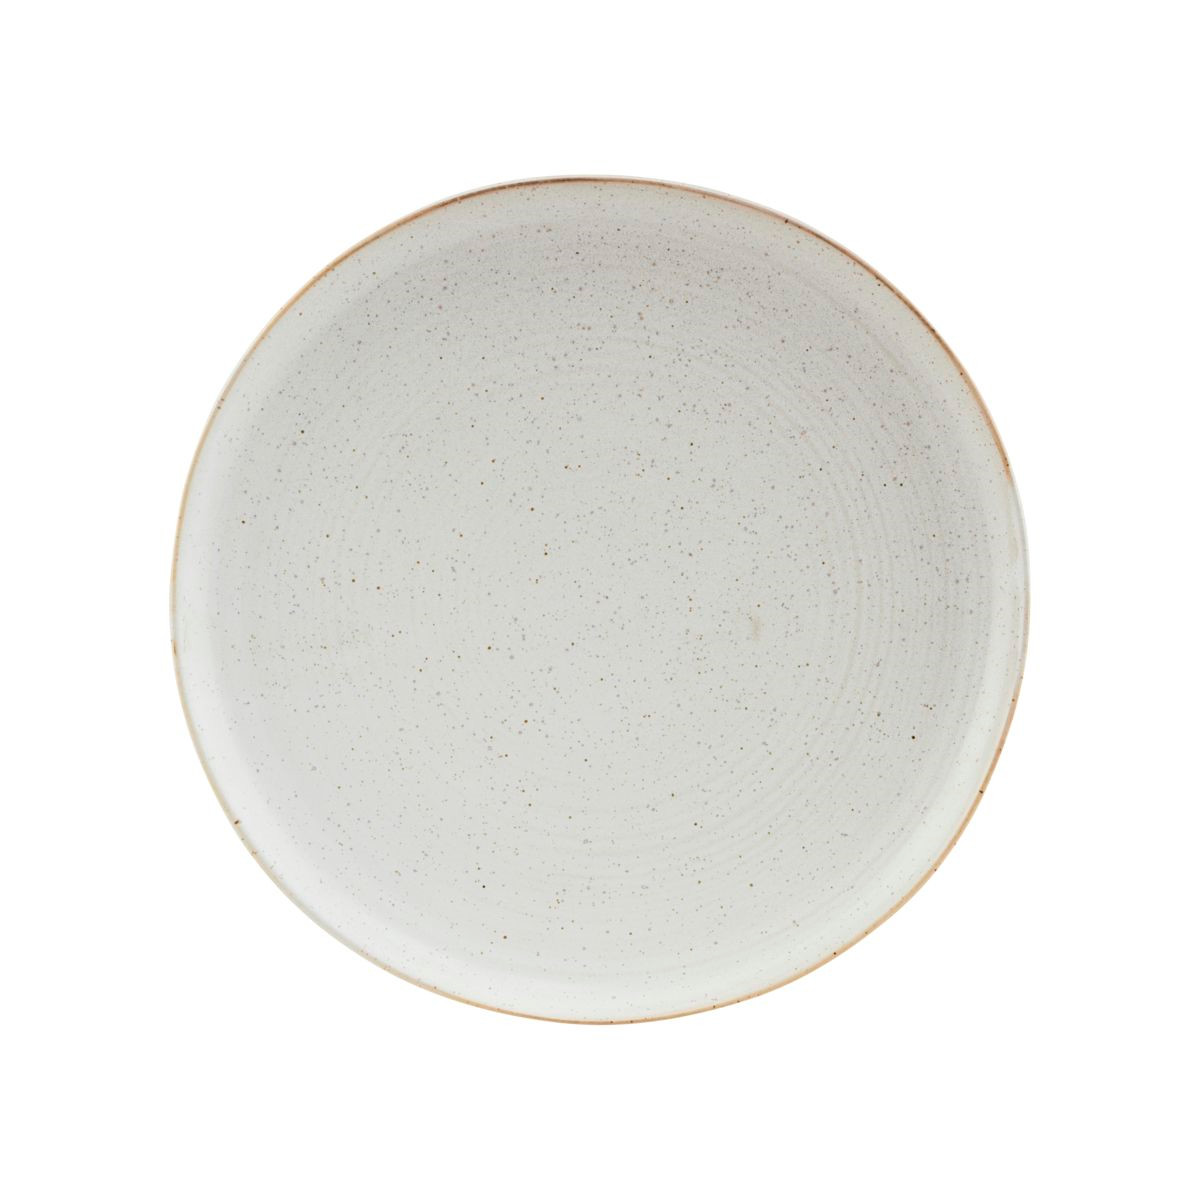 House Doctor Pion Lunch Plate Grey/White